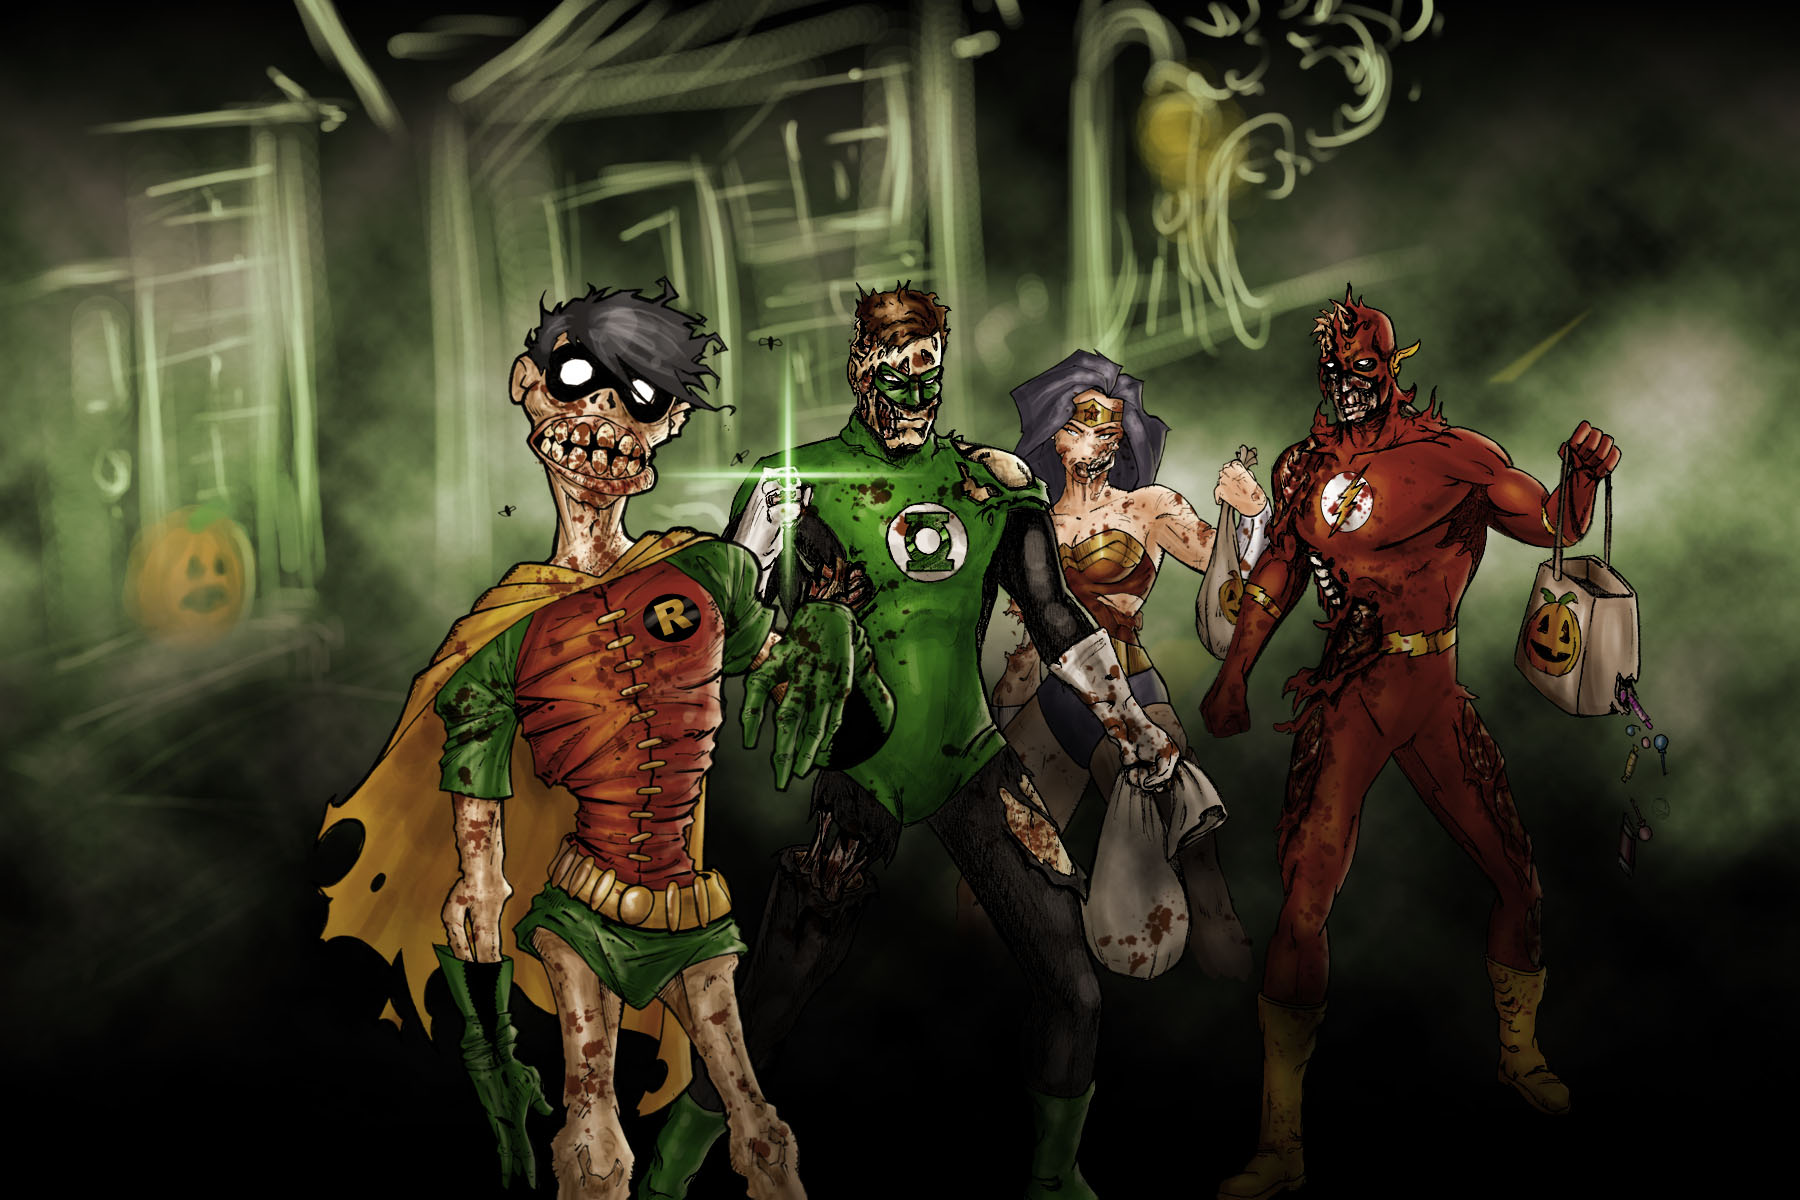 DC Zombies by ODS and Darqueimages